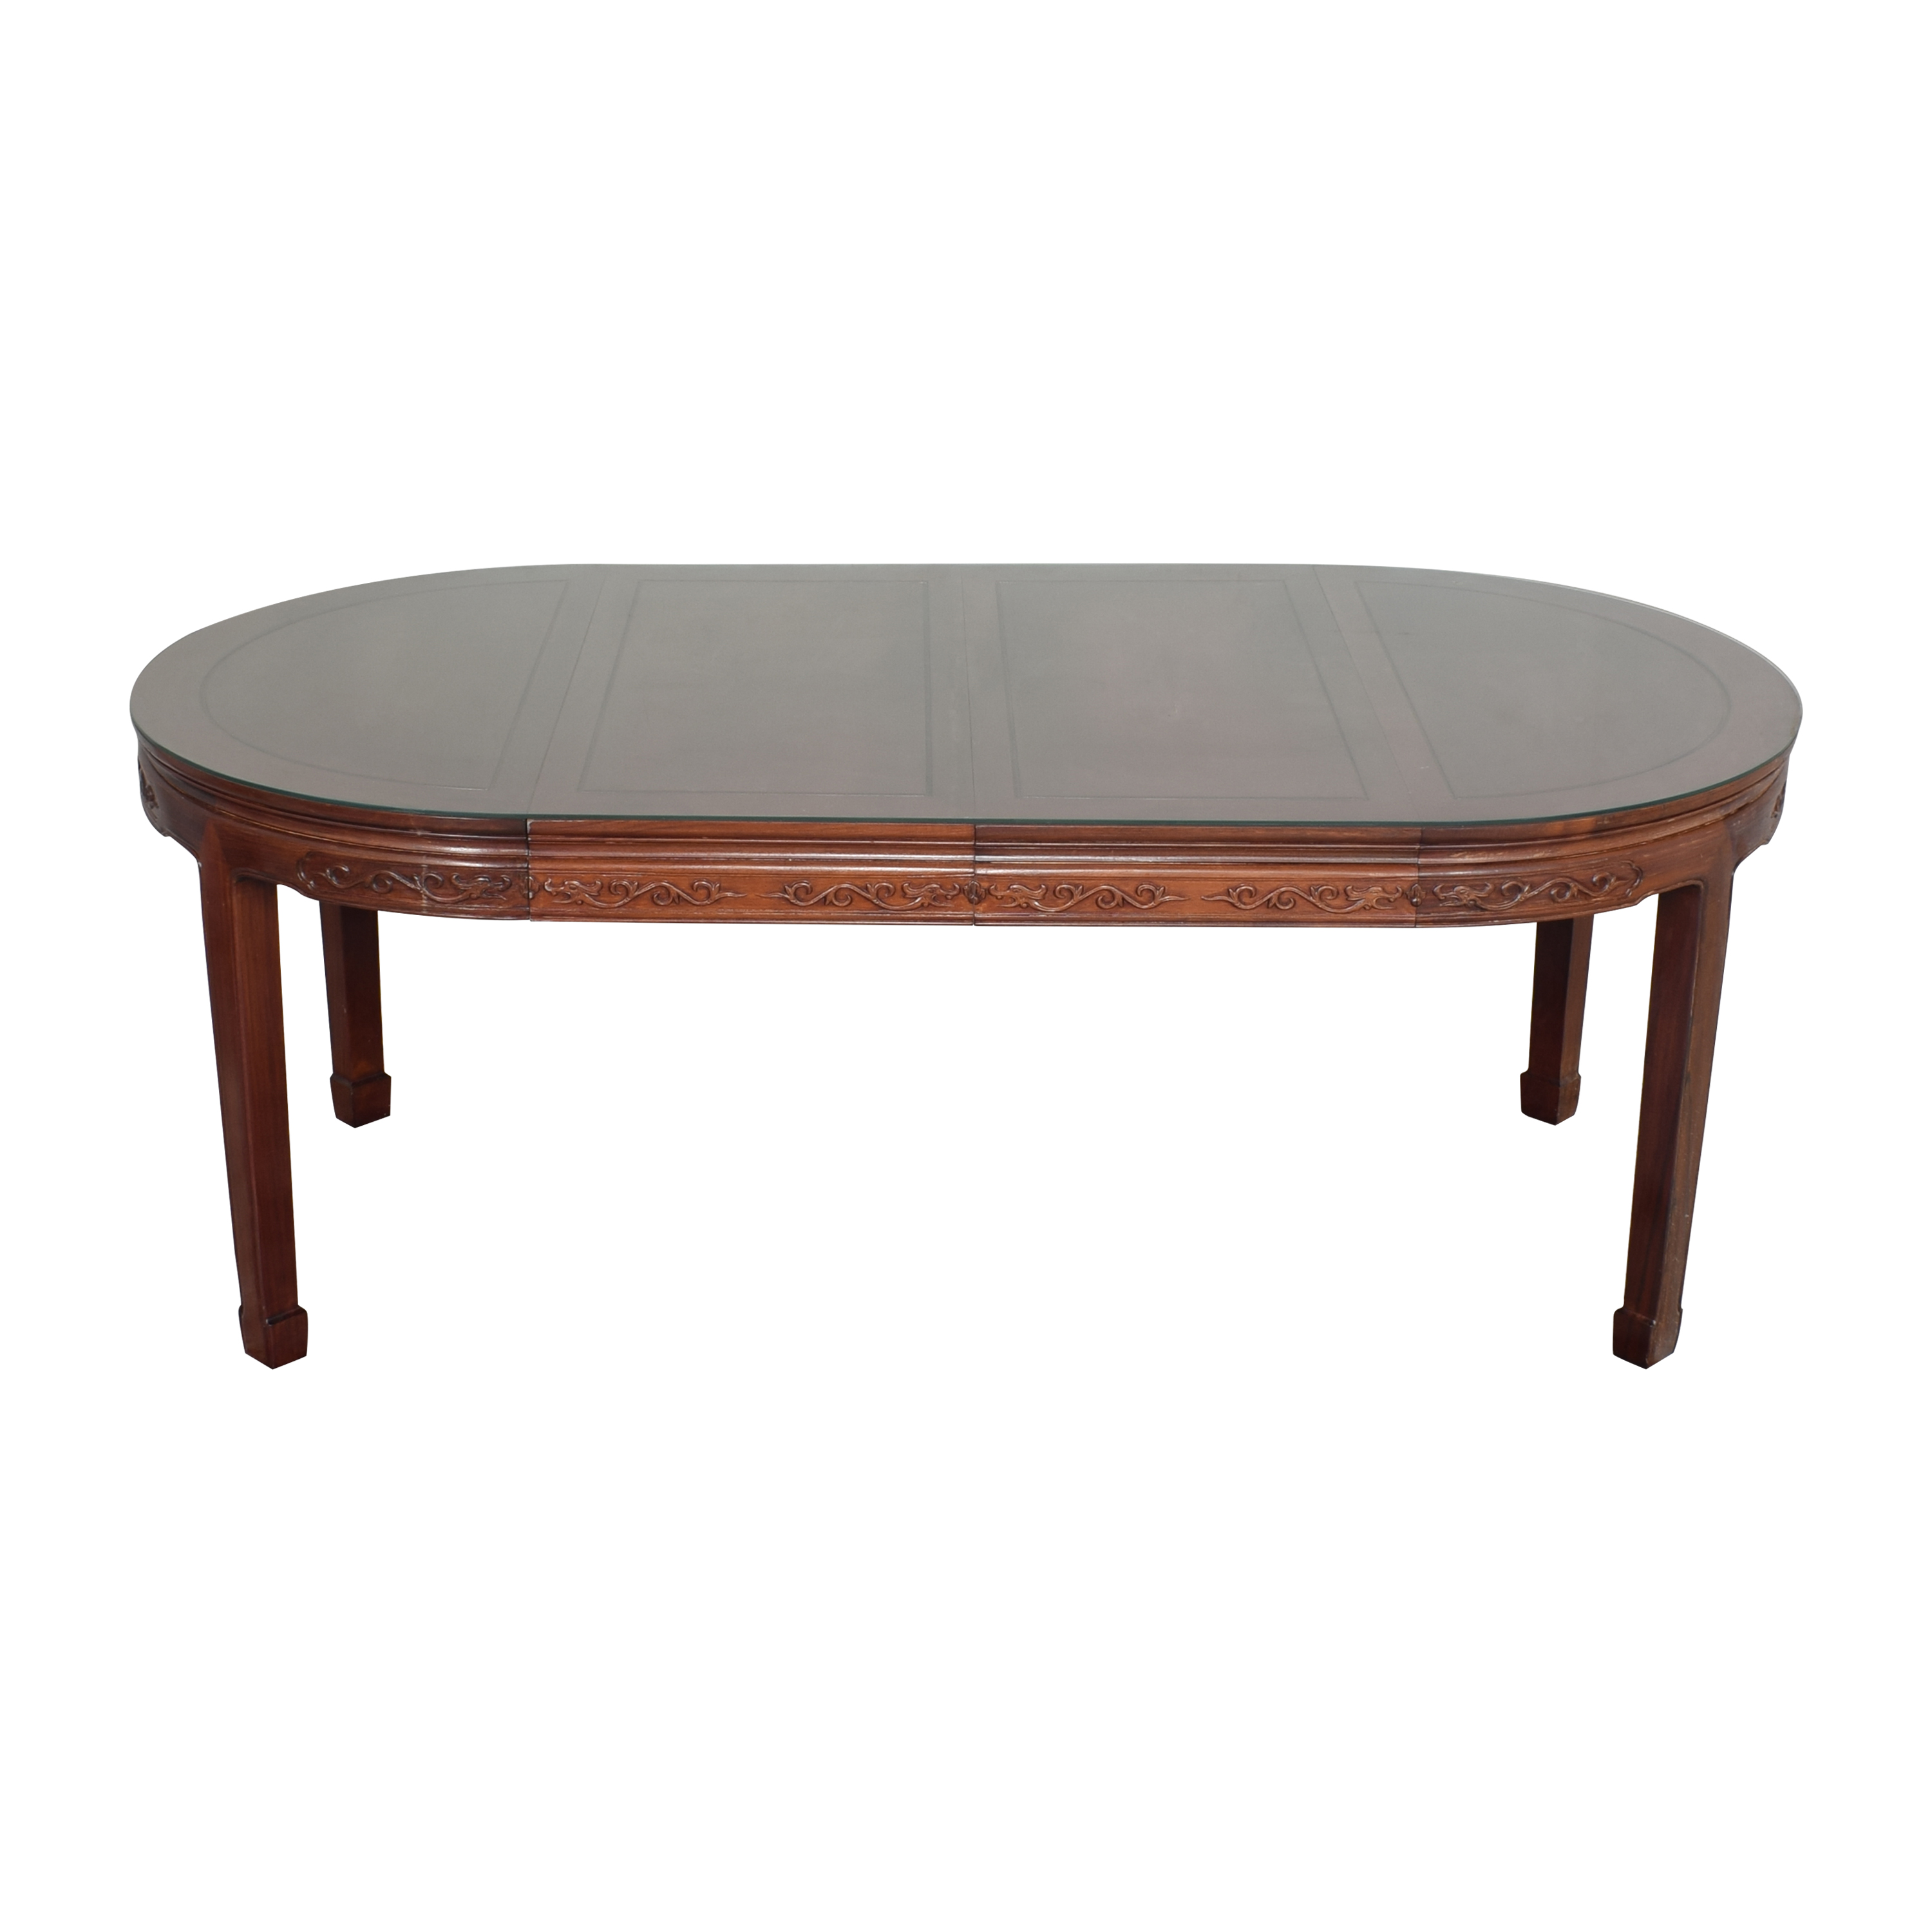 buy  Chinoiserie Round Extendable Dining Table online